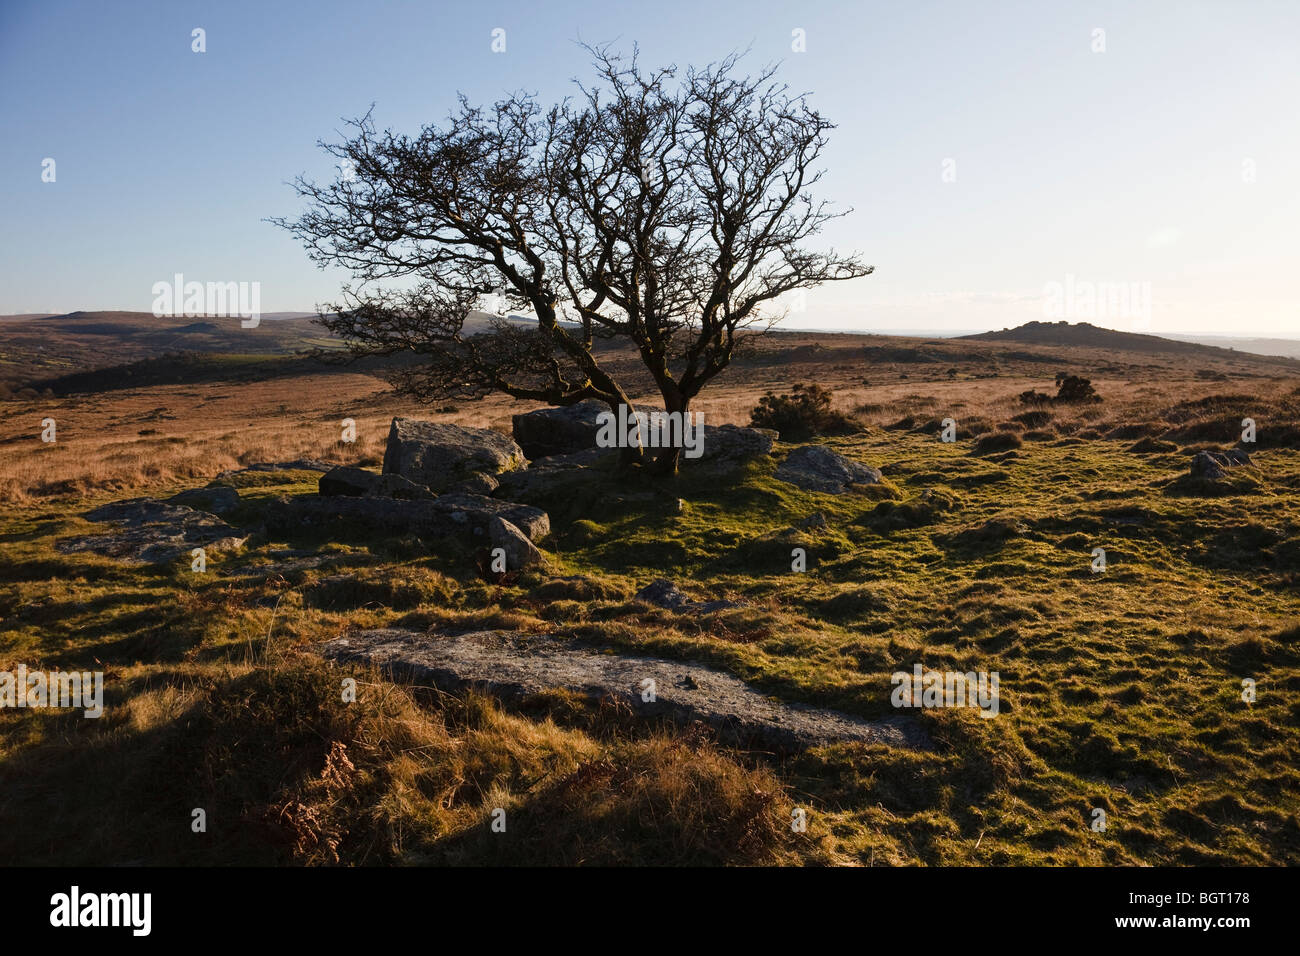 View towards Heckwood Tor from Whitchurch Common, Dartmoor. - Stock Image